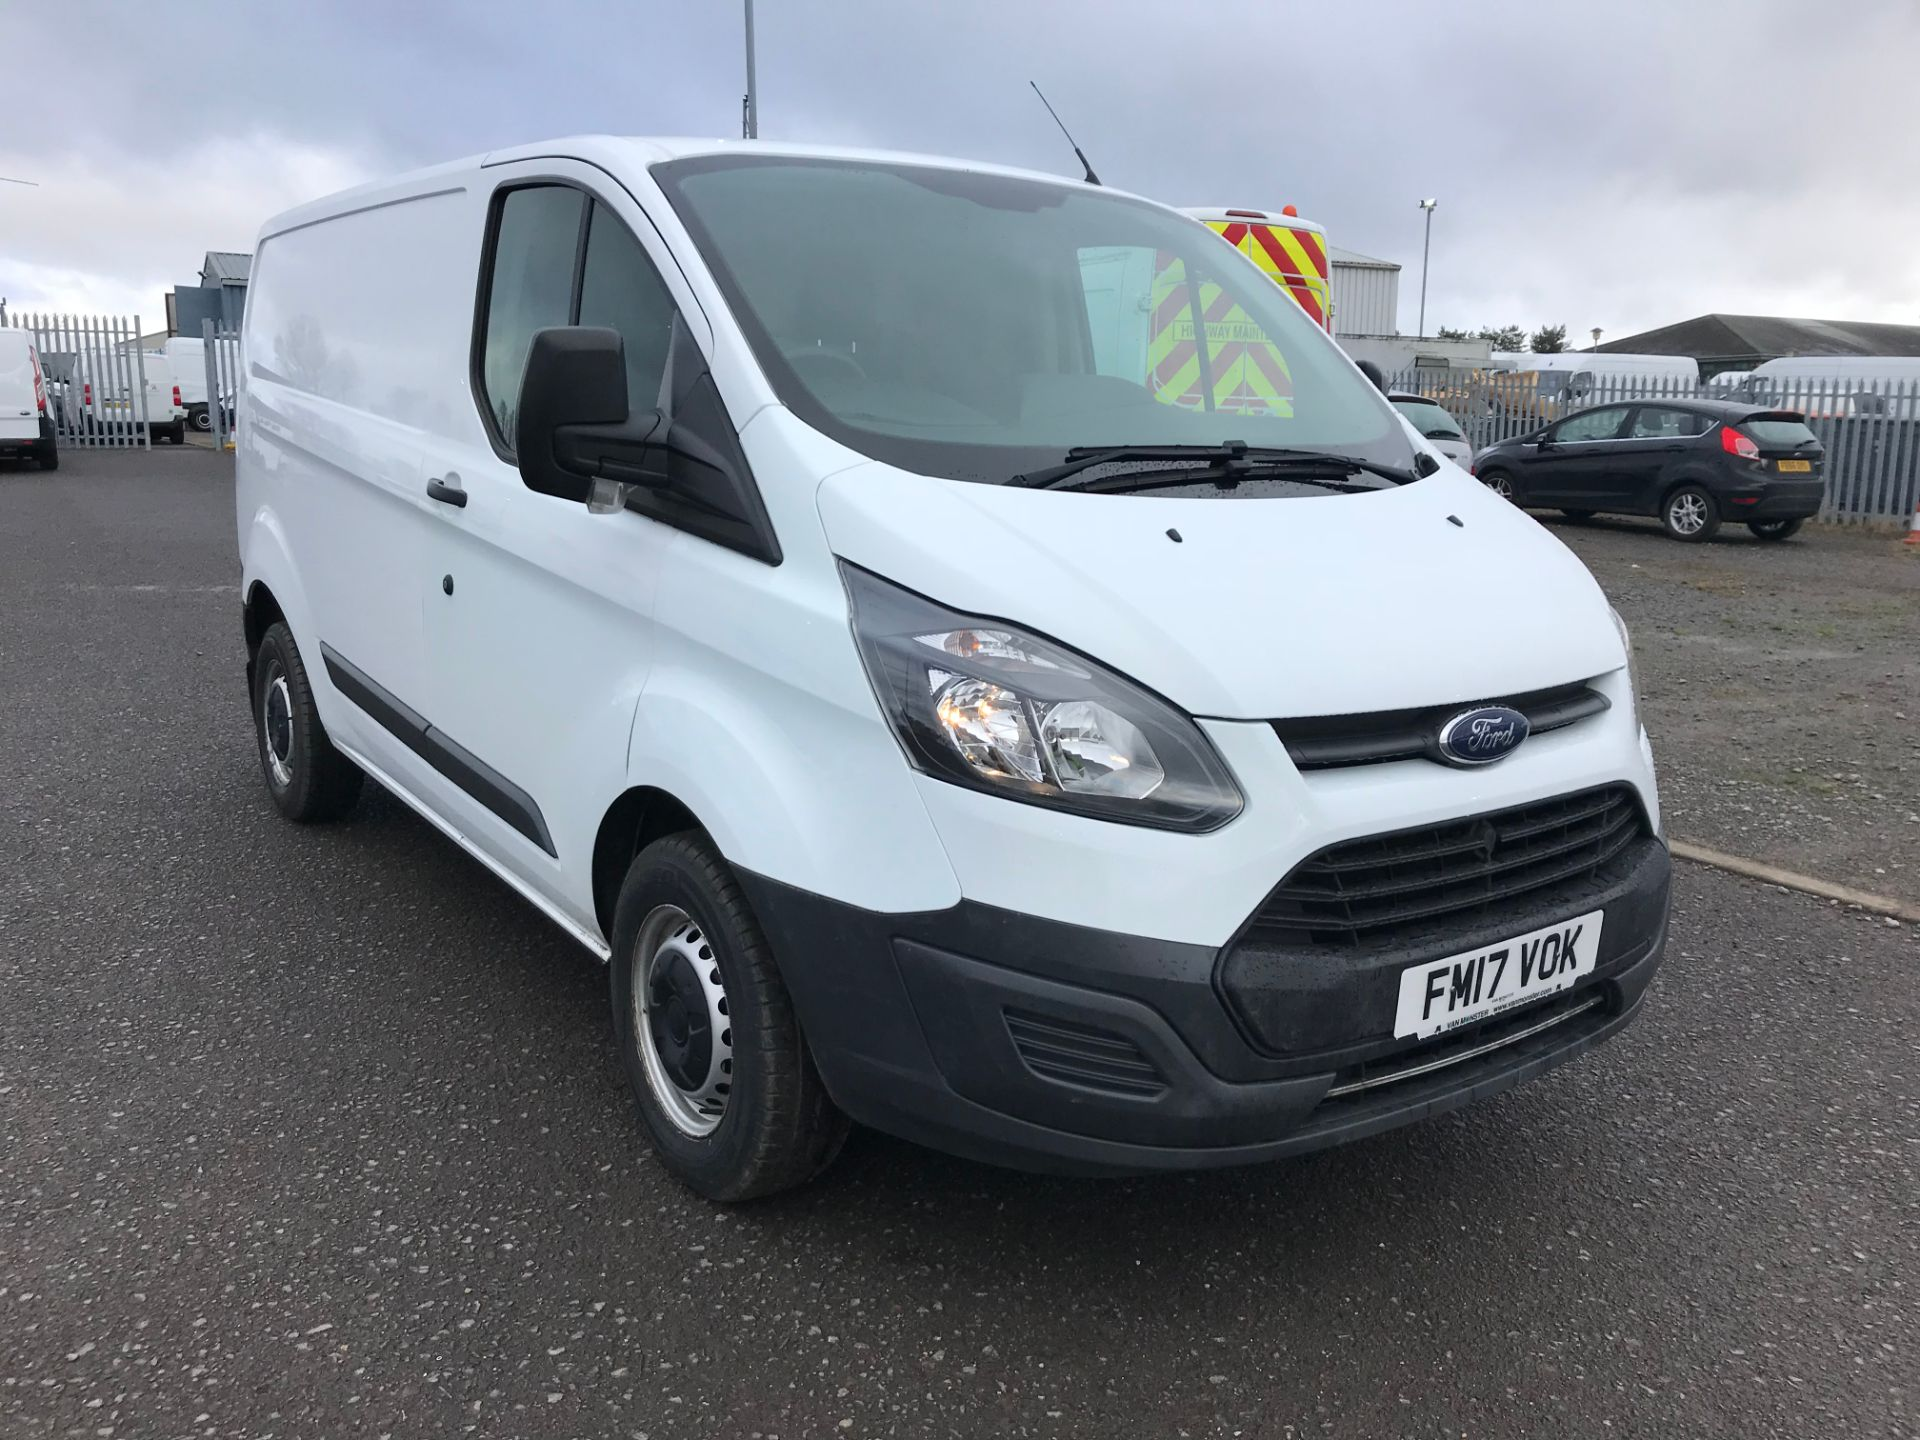 2017 Ford Transit Custom 2.0 Tdci 105Ps Low Roof Van (FM17VOK)